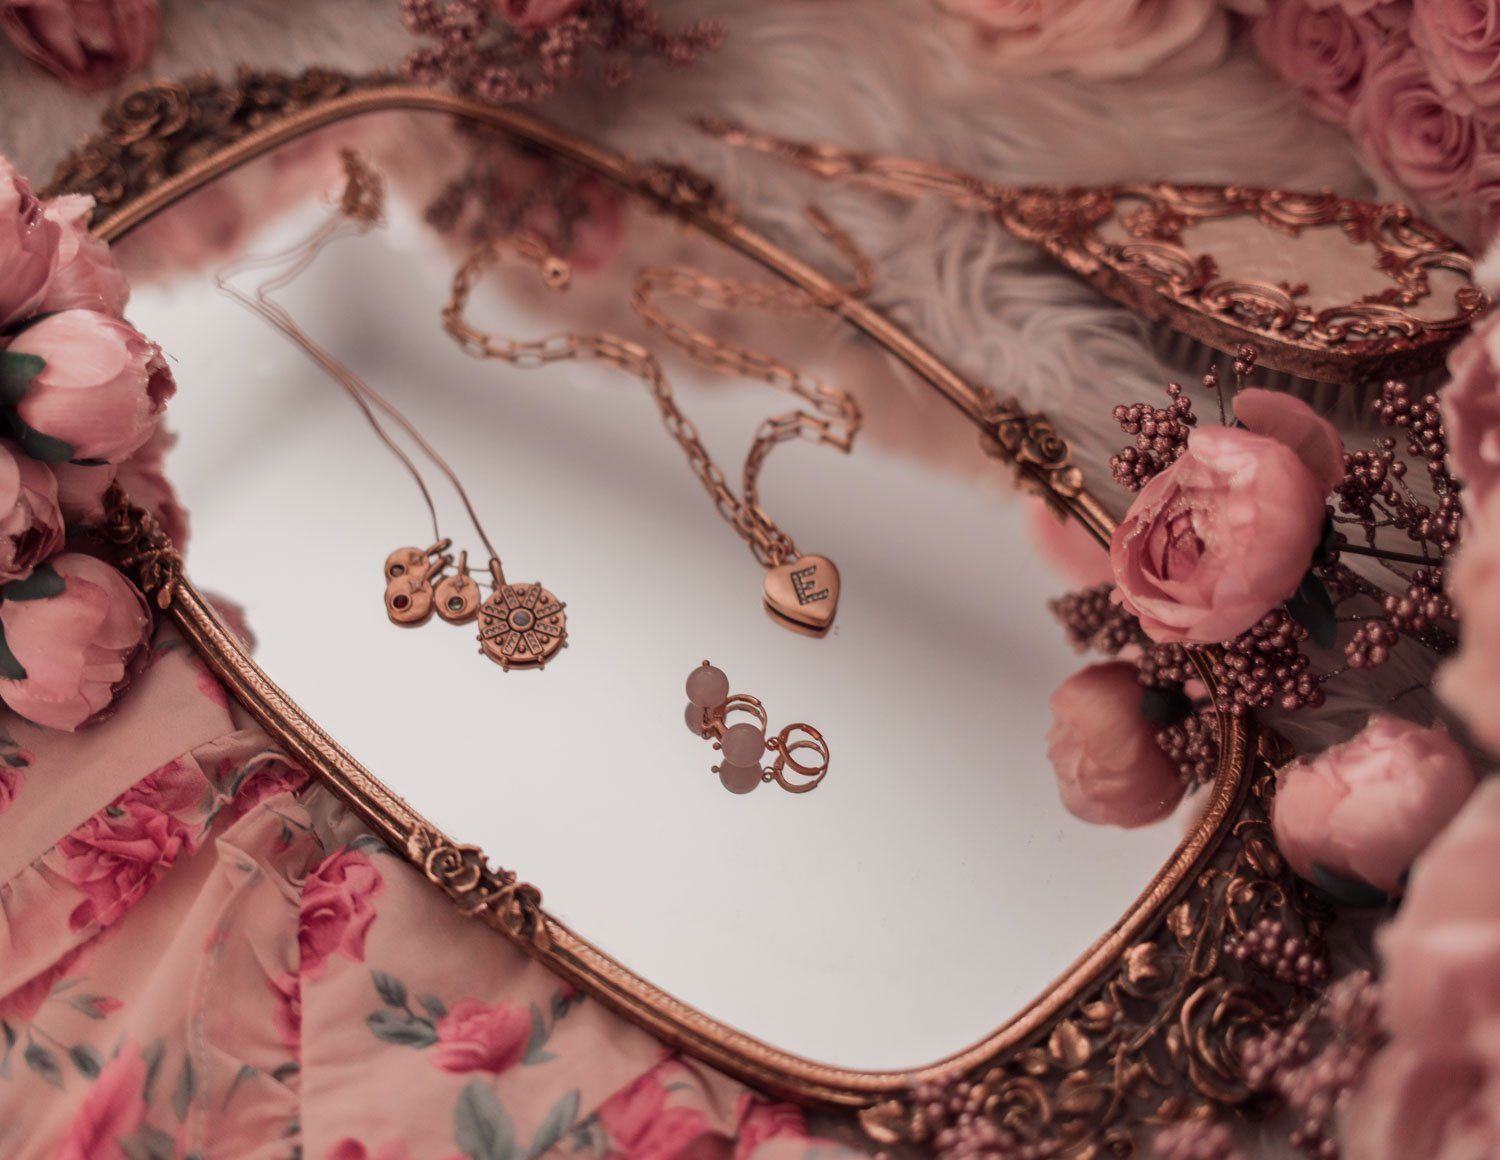 Feminine fashion blogger Elizabeth Hugen of Lizzie in Lace shares the Best Mother's Day gift ideas in her Mother's Day gift guide including these Sequin jewelry necklaces